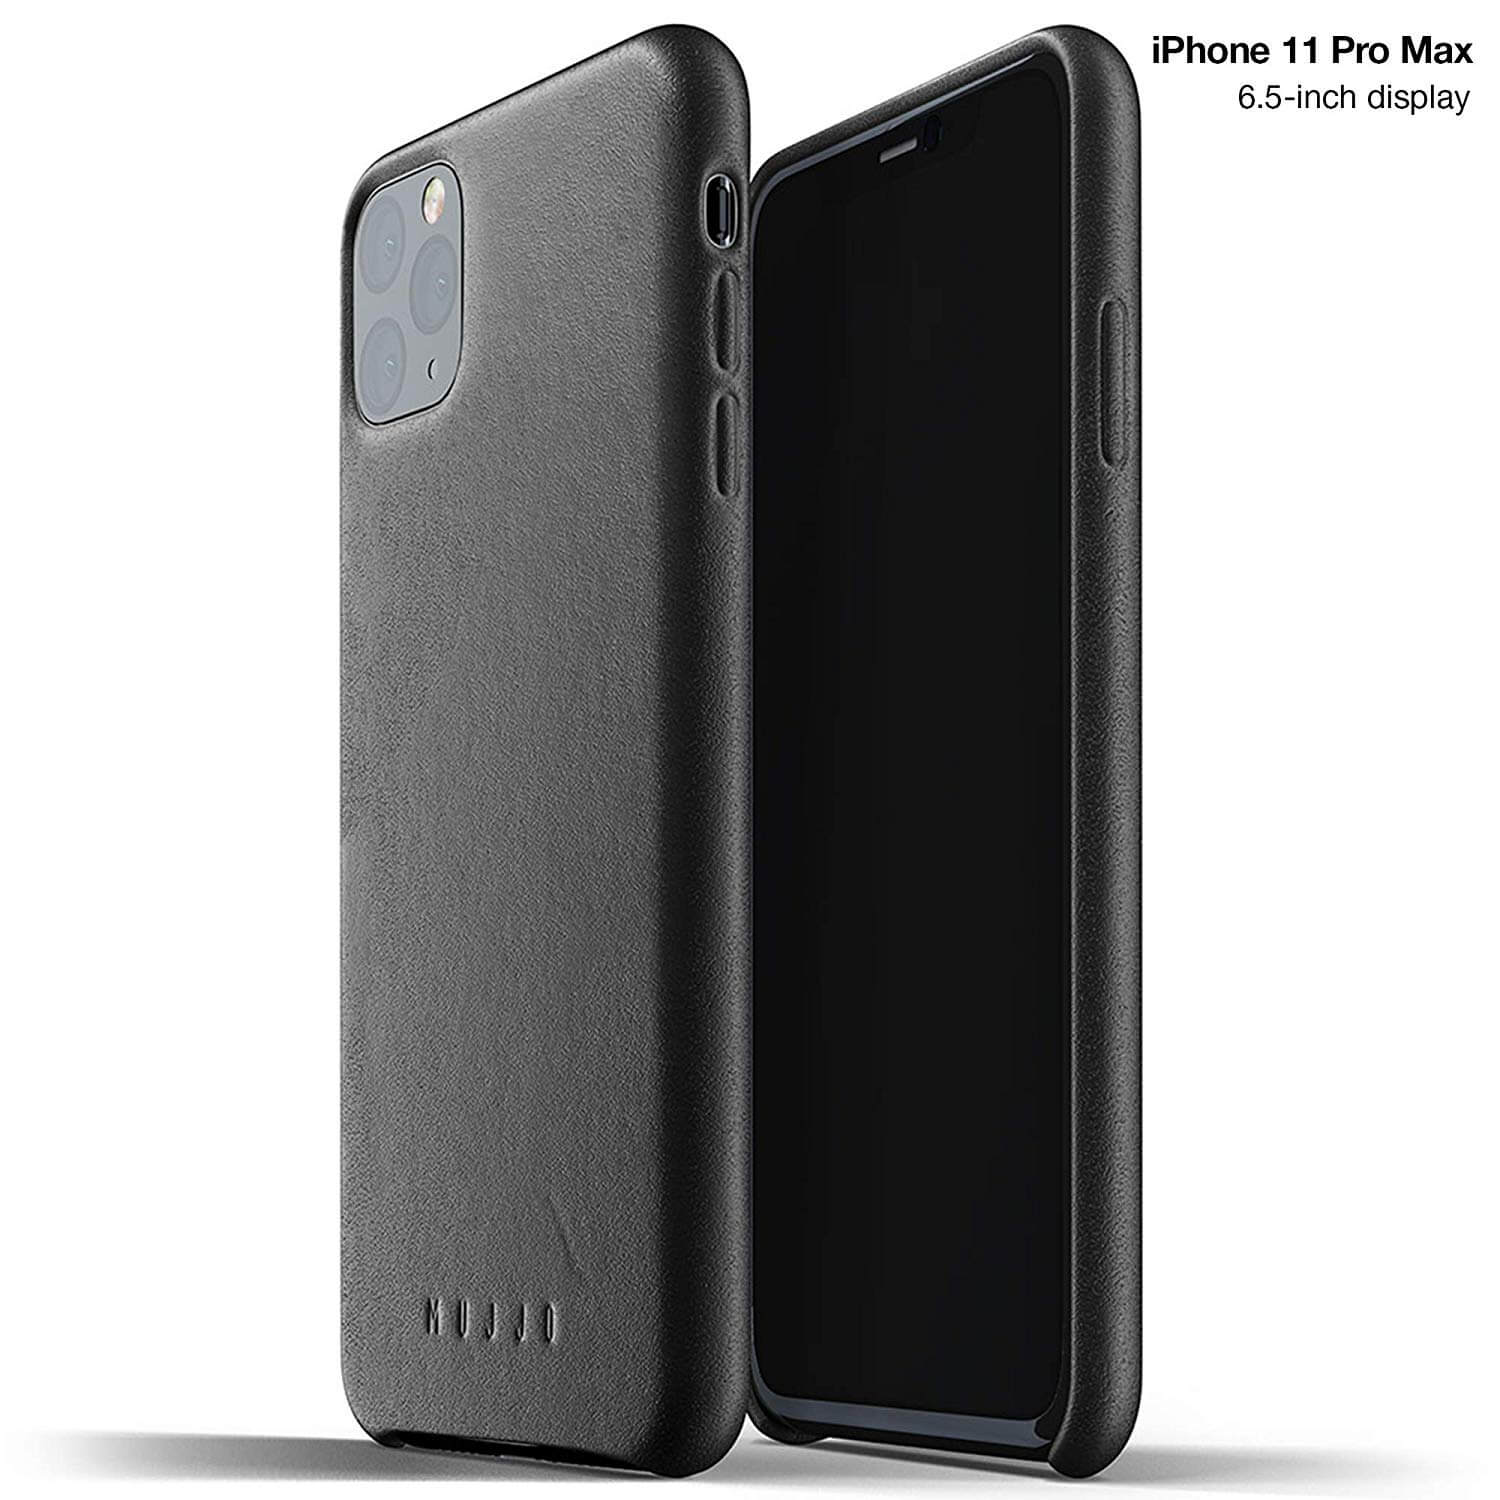 Mujjo Full Leather Case for iPhone 11 Pro Max (black)